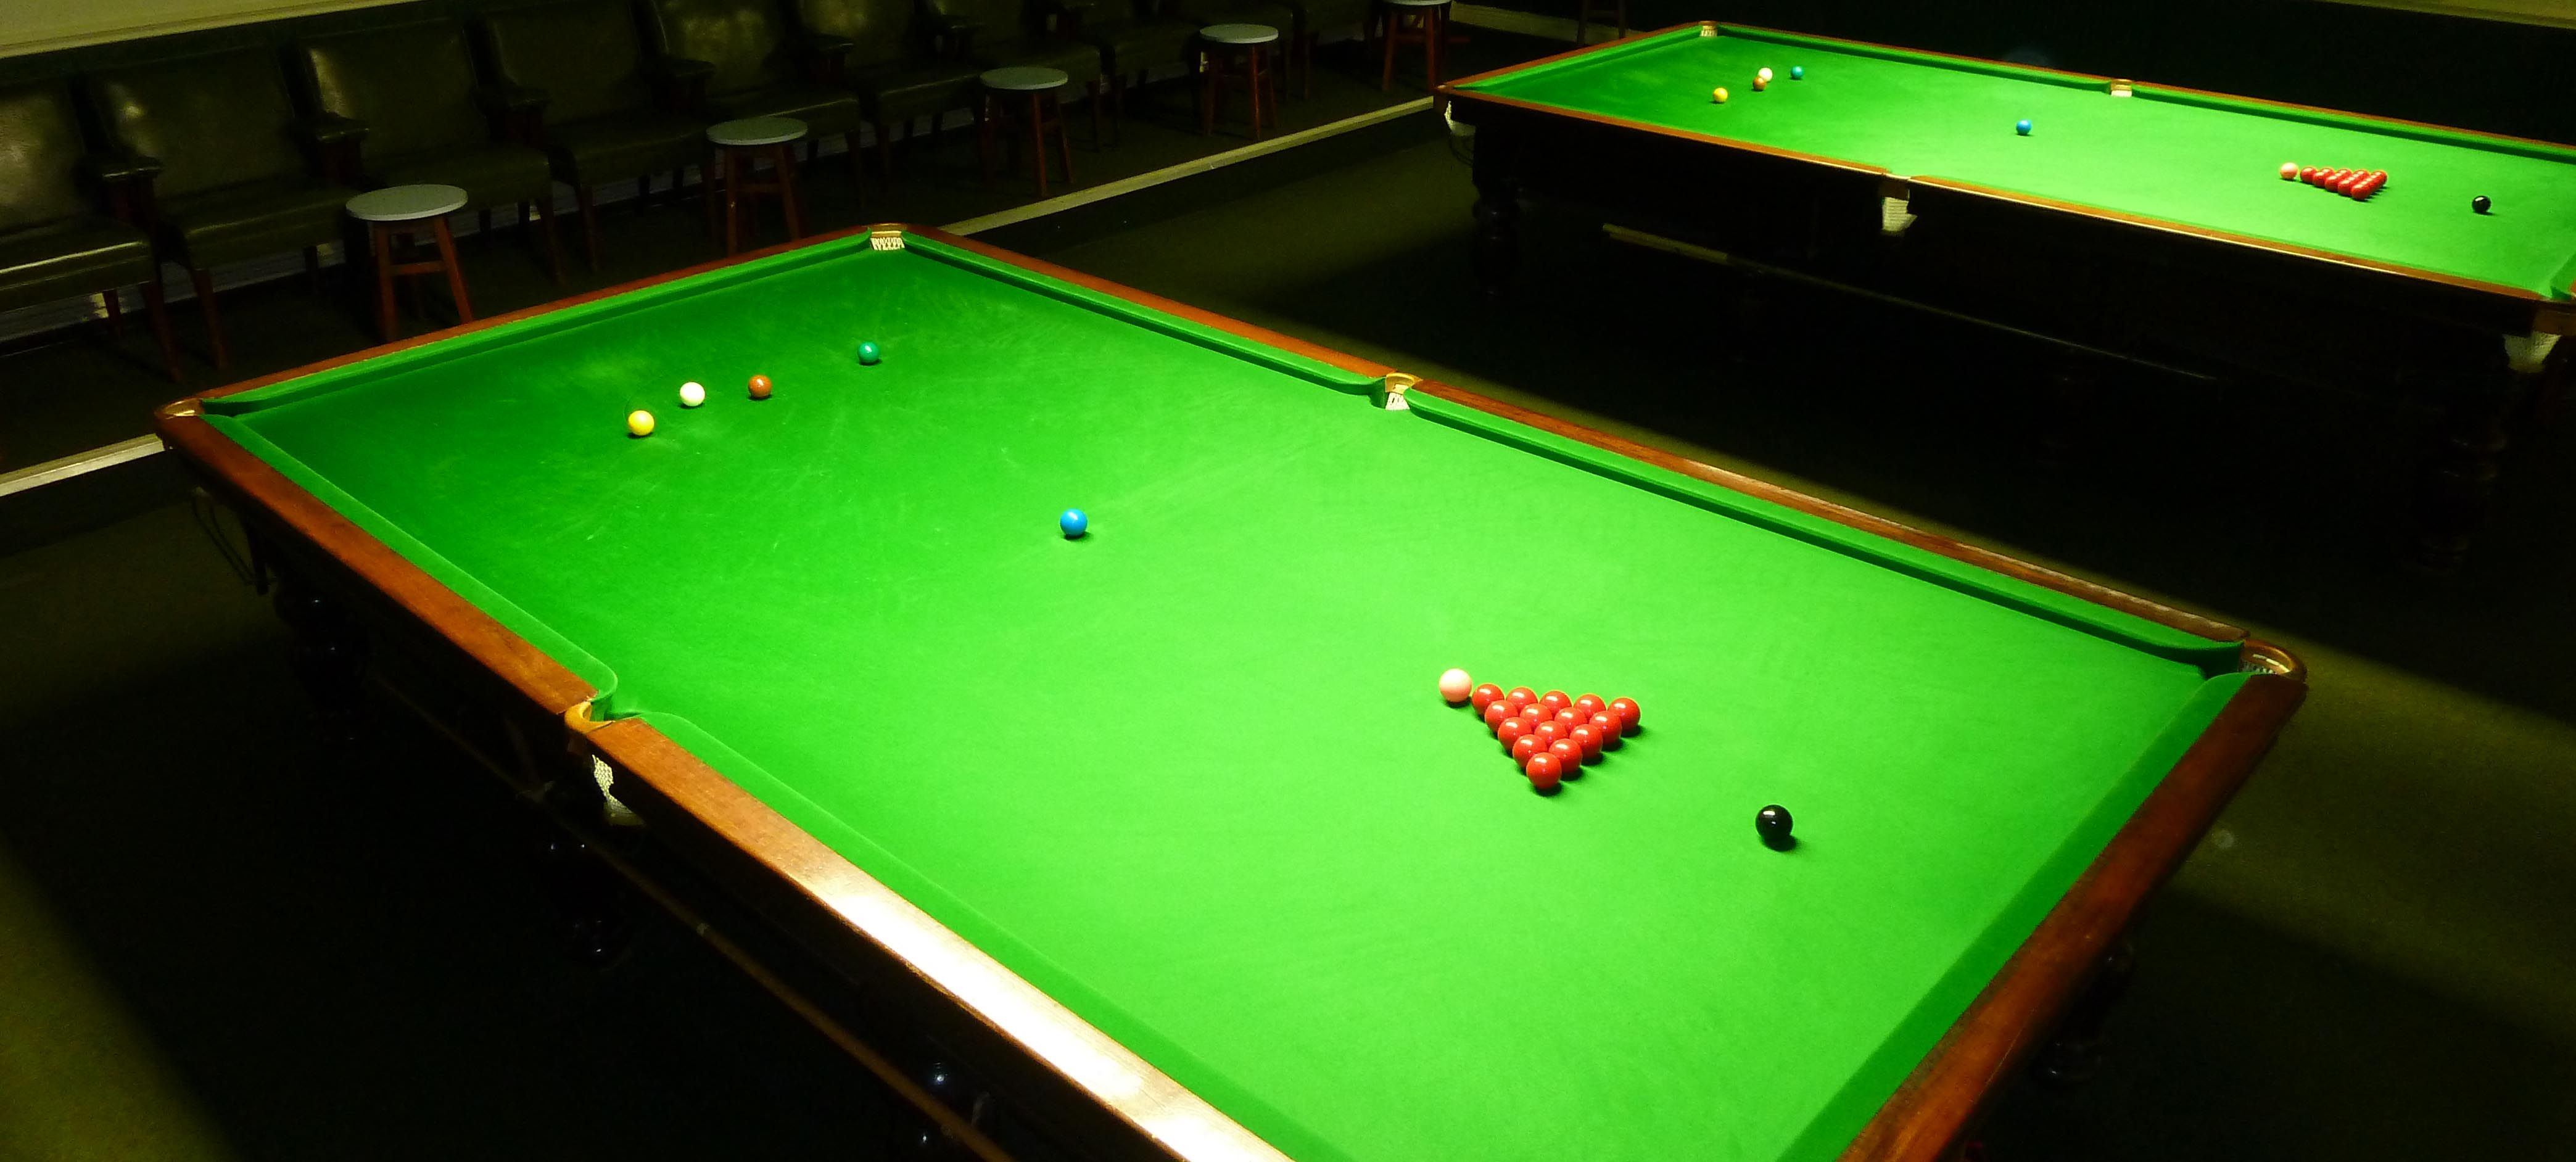 Sports Wallpaper Billiard Iphone Wallpapers Hd Resolution: Snooker Club HD Wallpaper